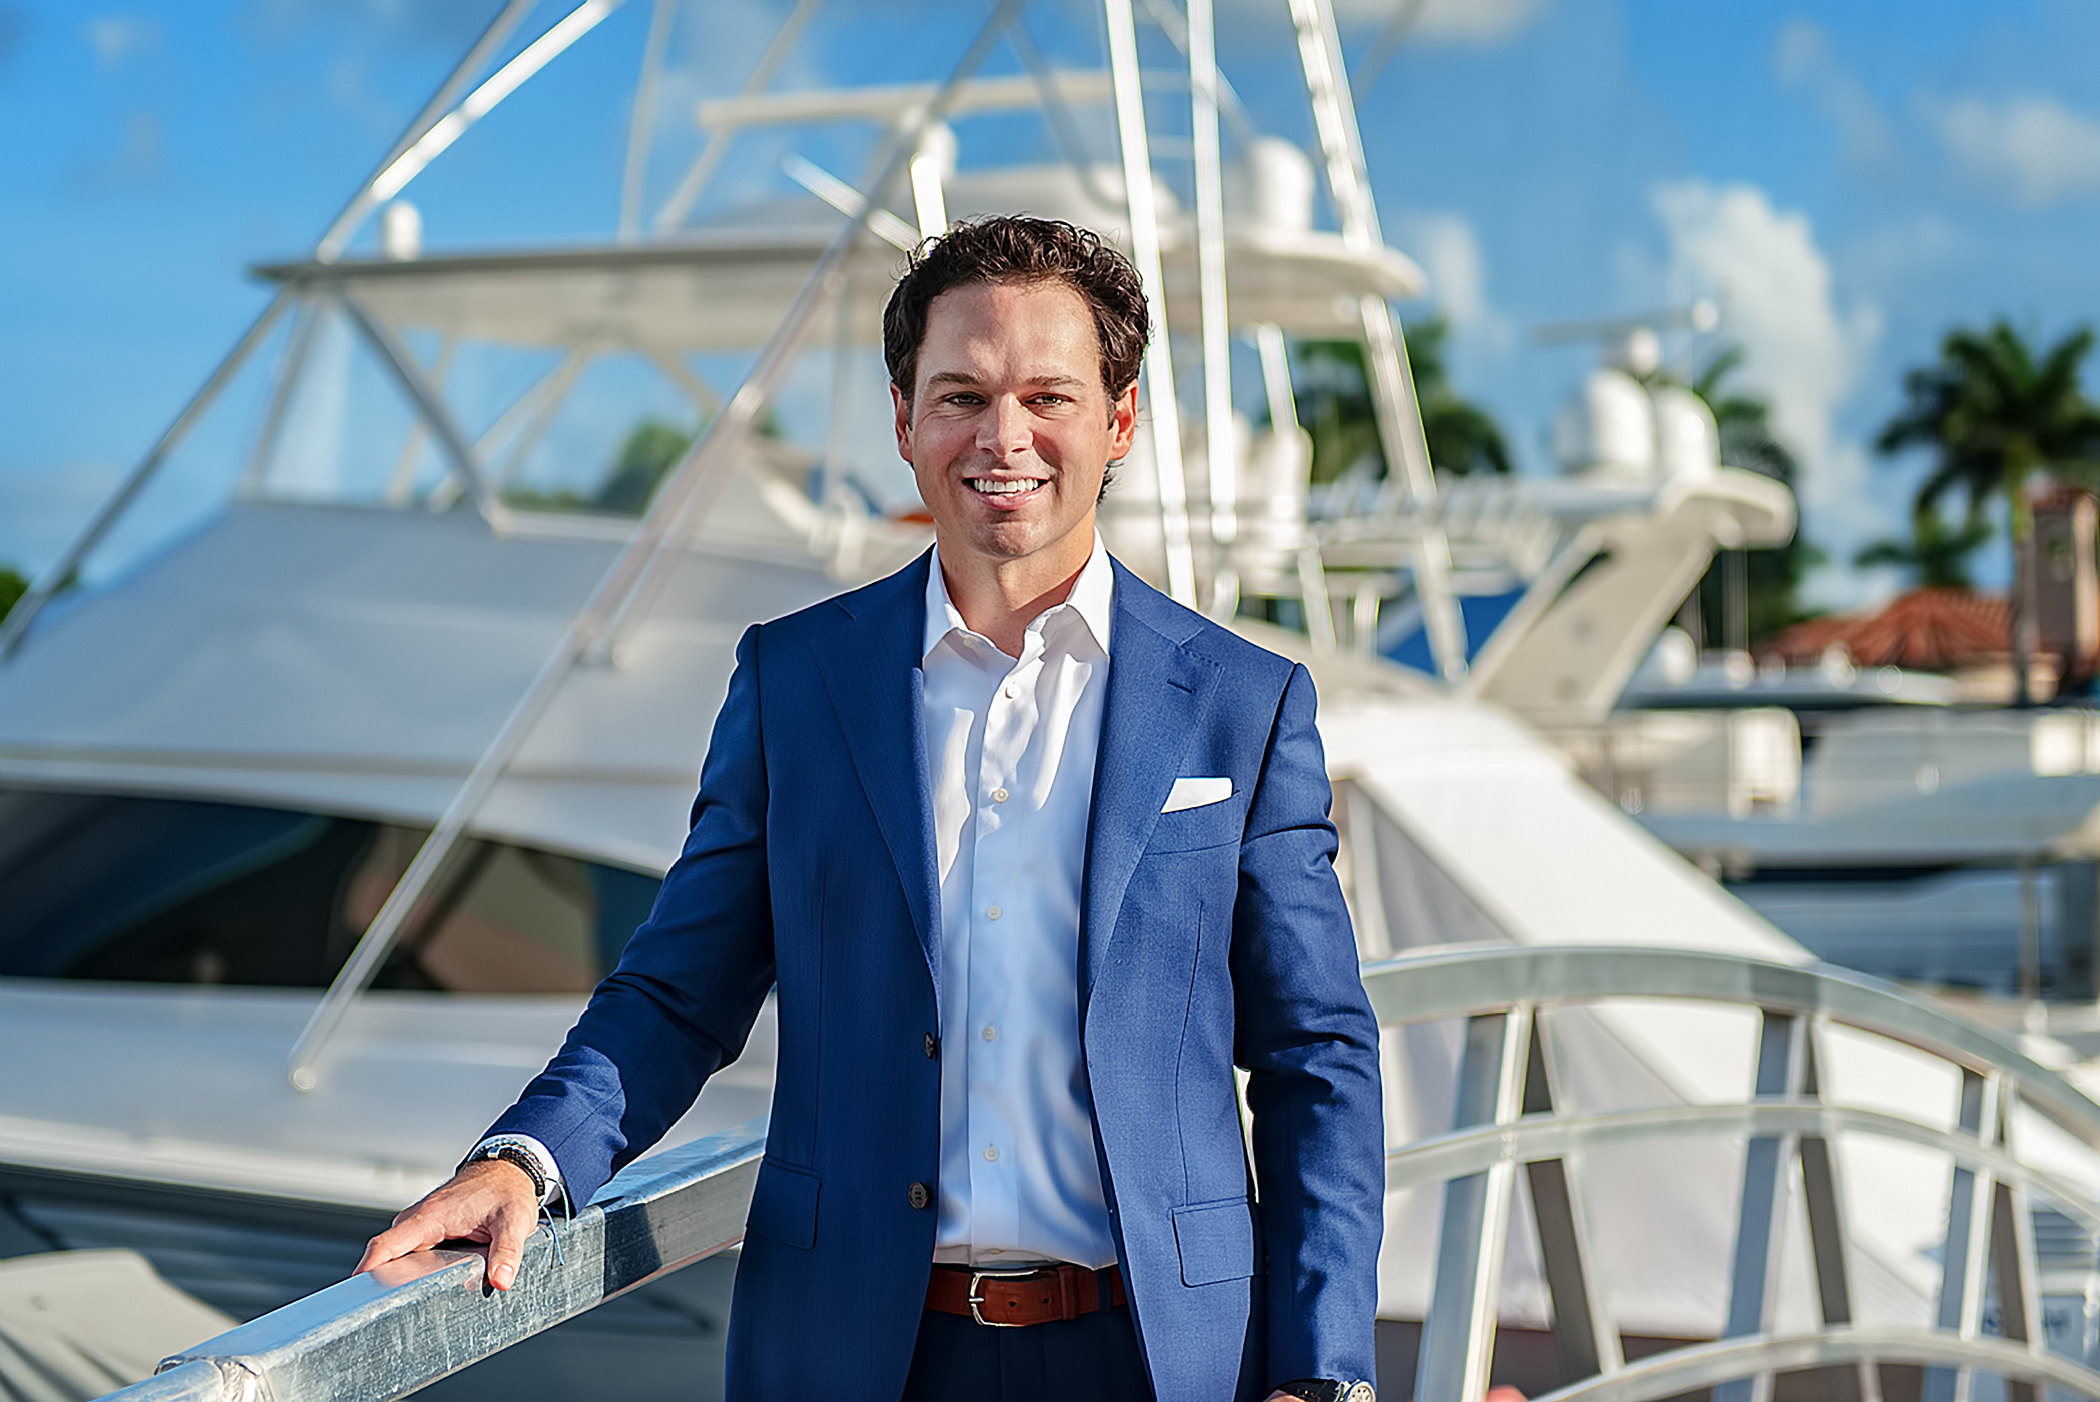 Mike Hennessy, CFA, CFP® standing in front of fishing boat wearing a blue suit and white shirt